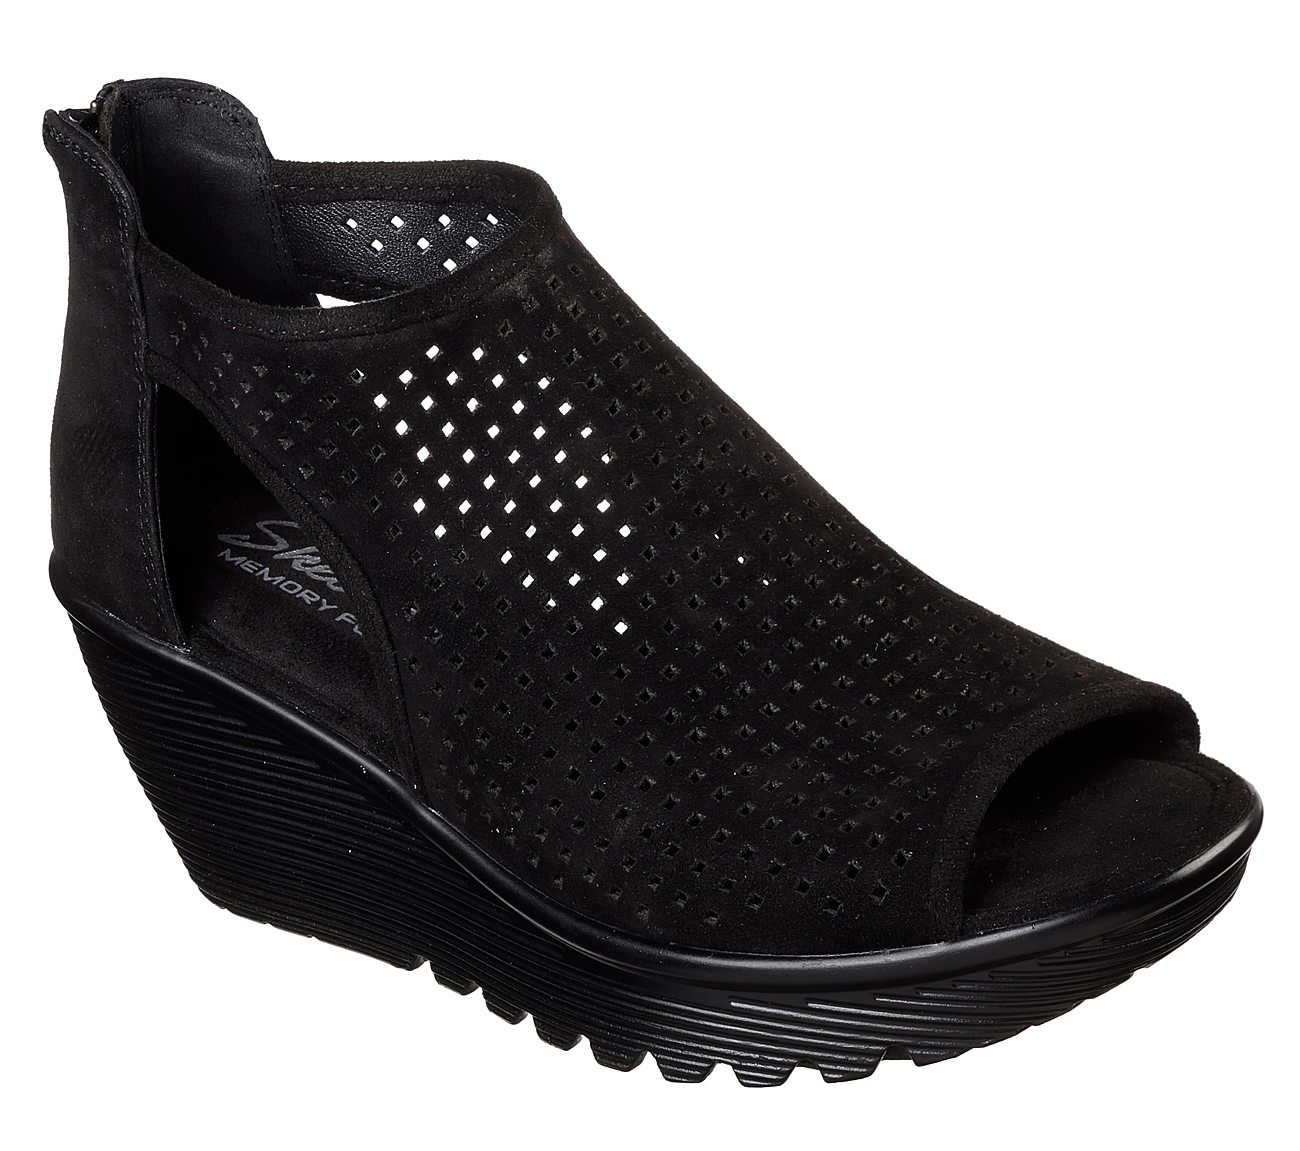 Buy SKECHERS Parallel - Beehive Slide